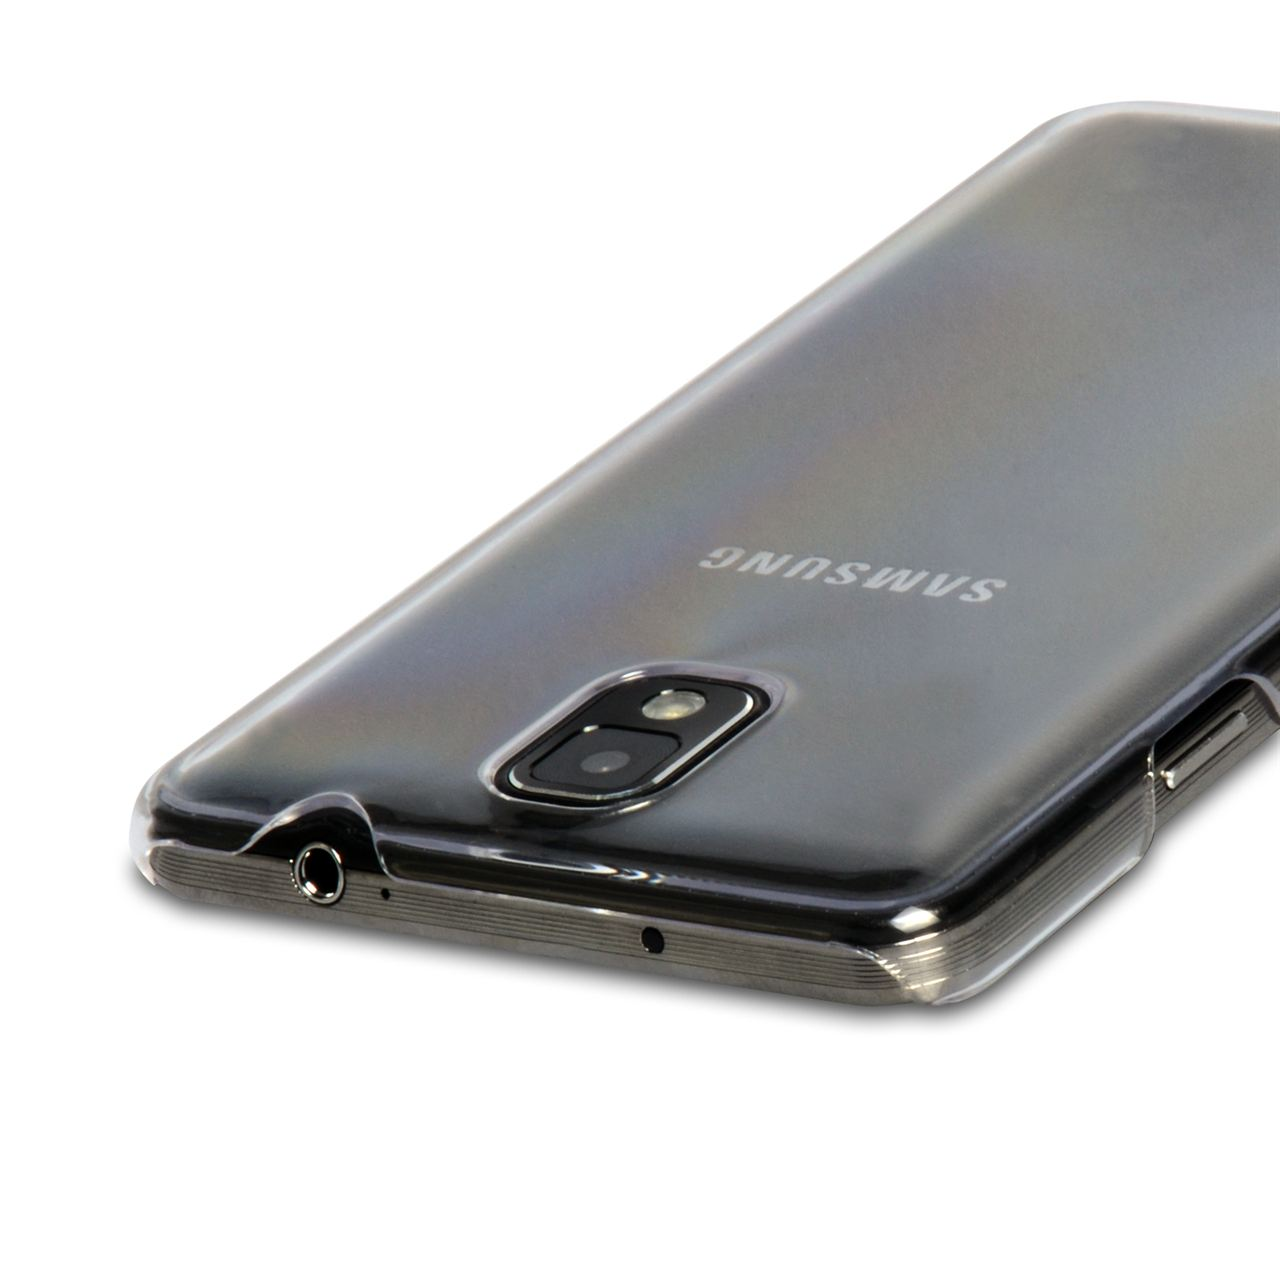 YouSave Accessories Samsung Galaxy Note 3 Crystal Clear Hard Case